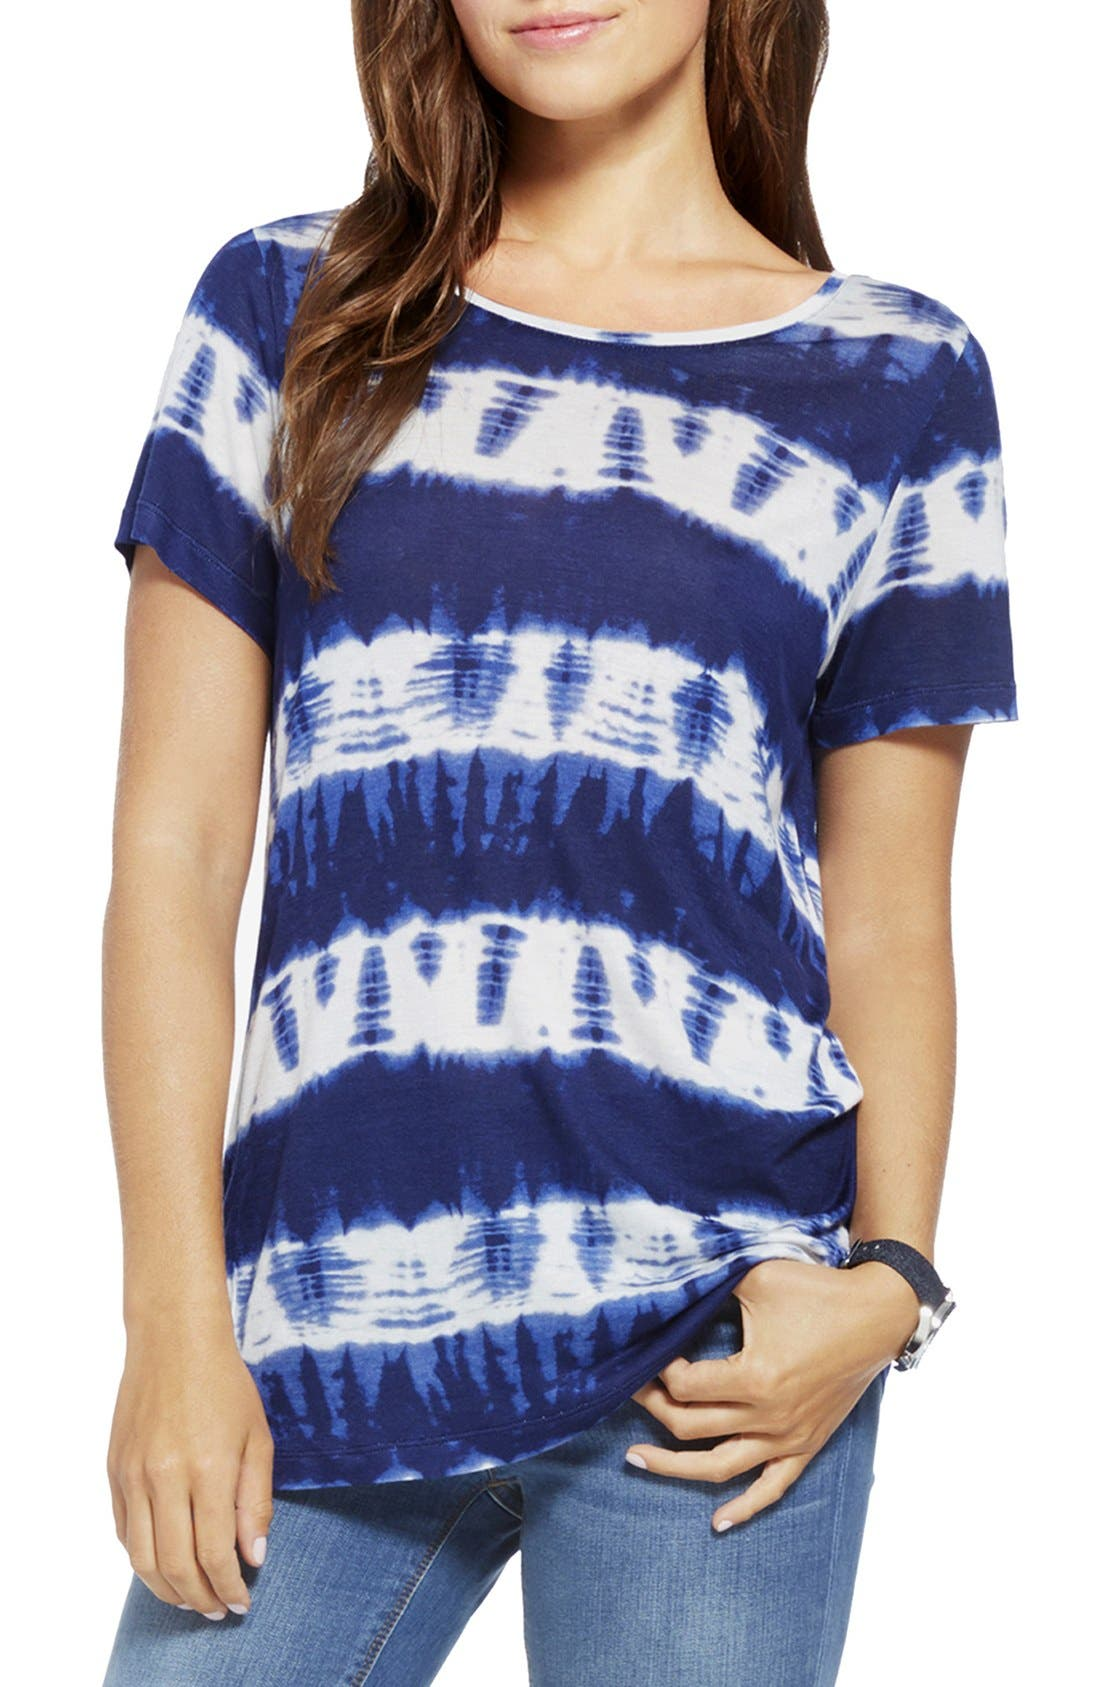 Main Image - Two by Vince Camuto Tie Dye Stripe Ballet Neck Tee